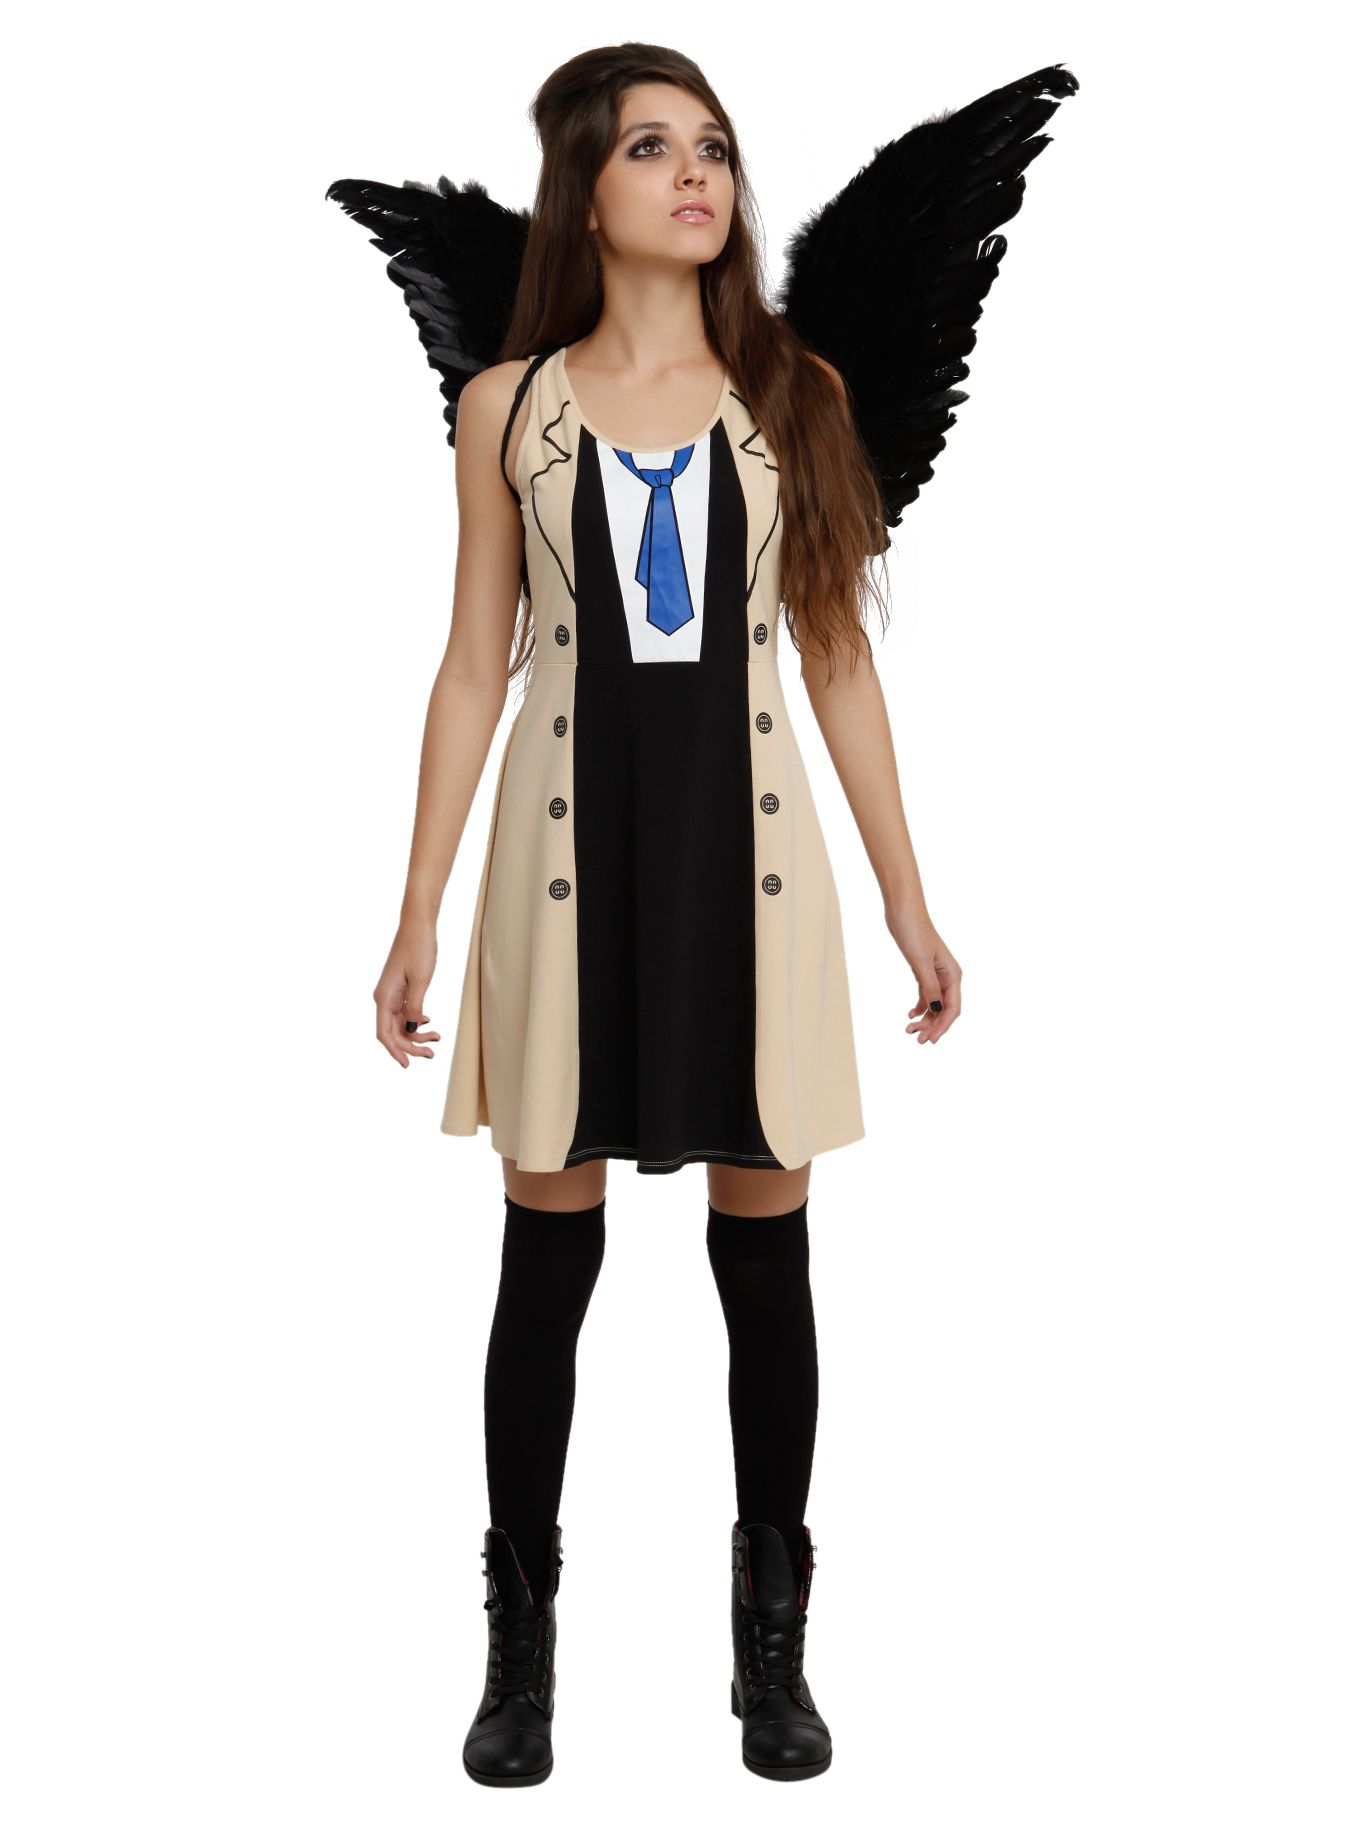 supernatural castiel costume dress | supernatty | pinterest